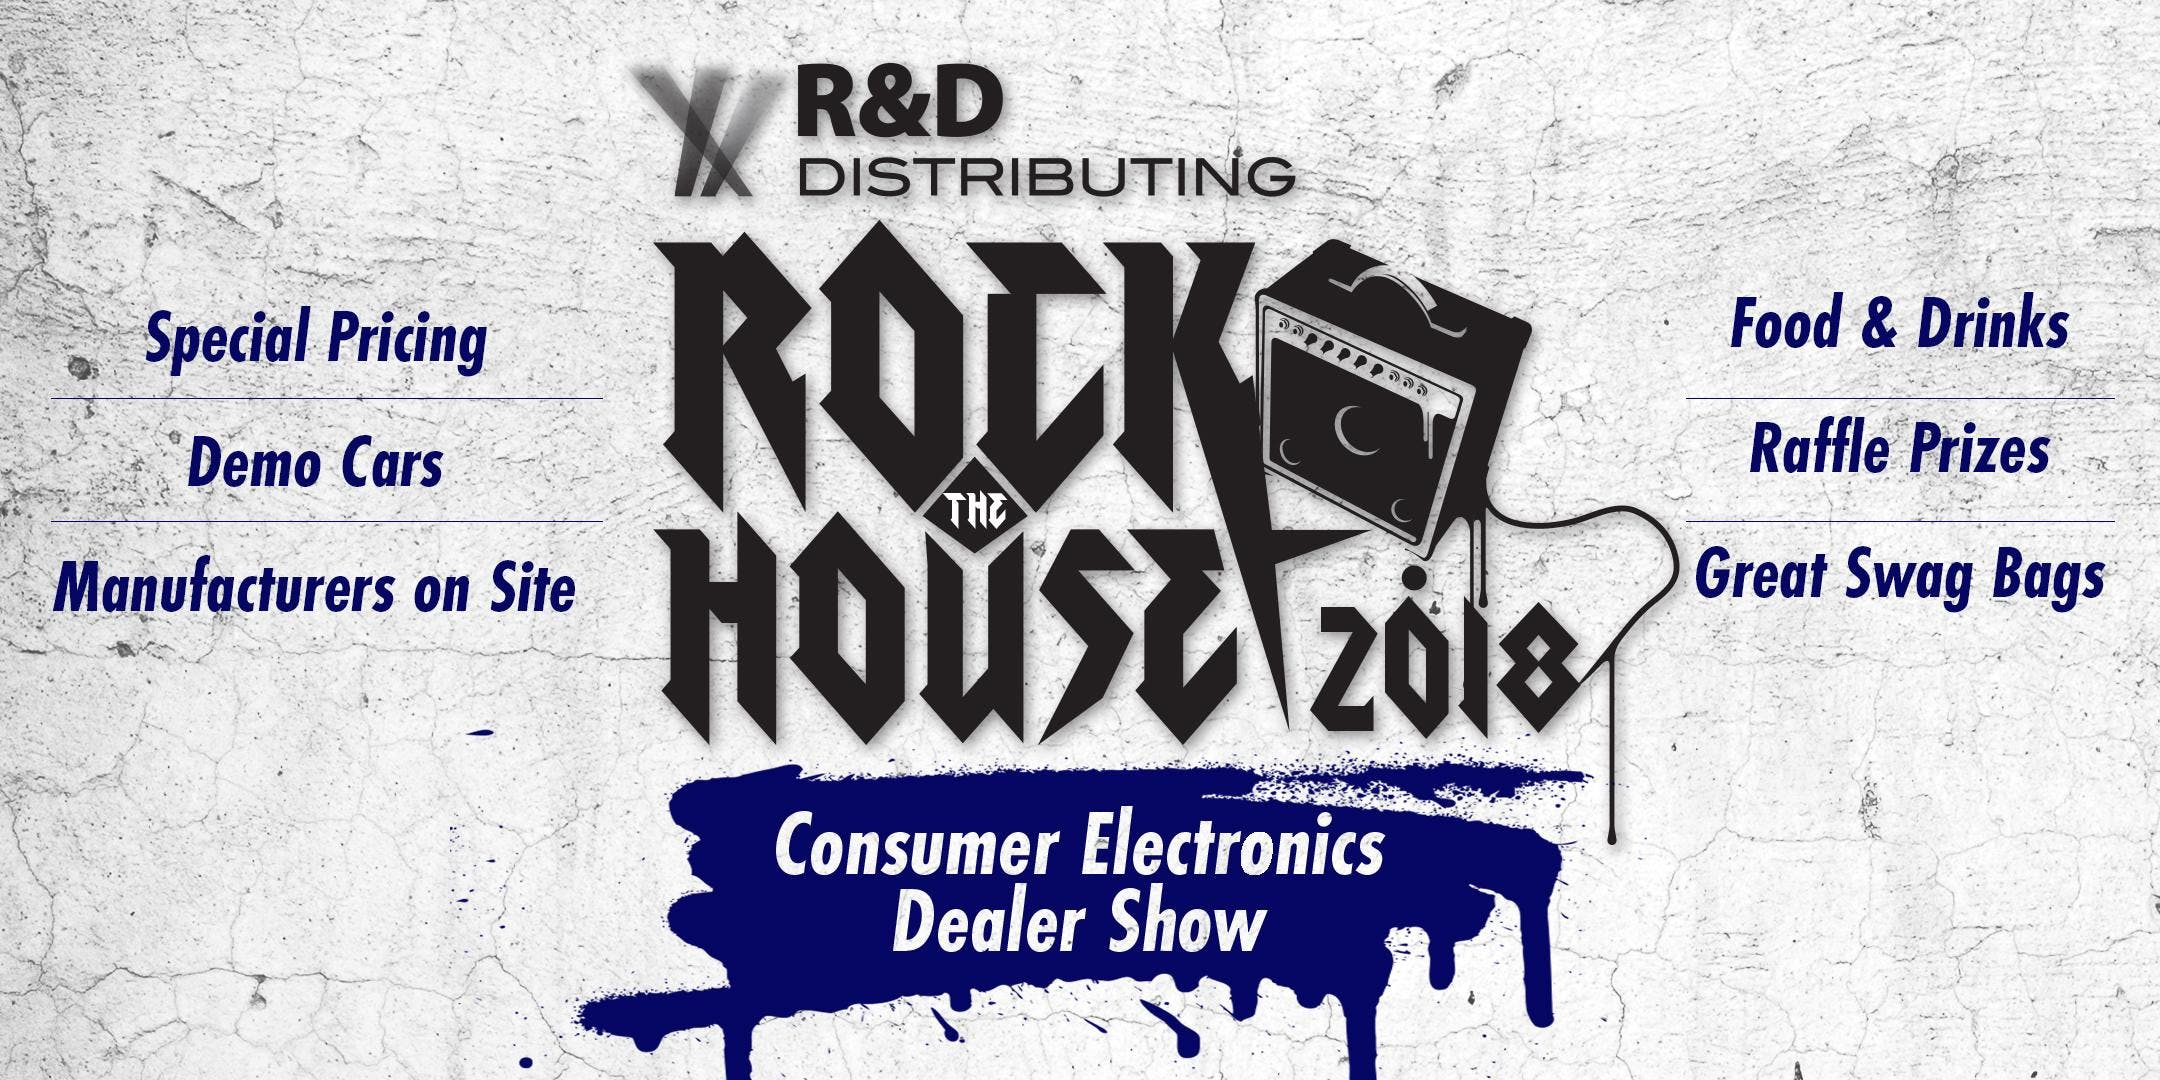 Rock The House 2018 | Consumer Electronics Dealer Show - Phoenix